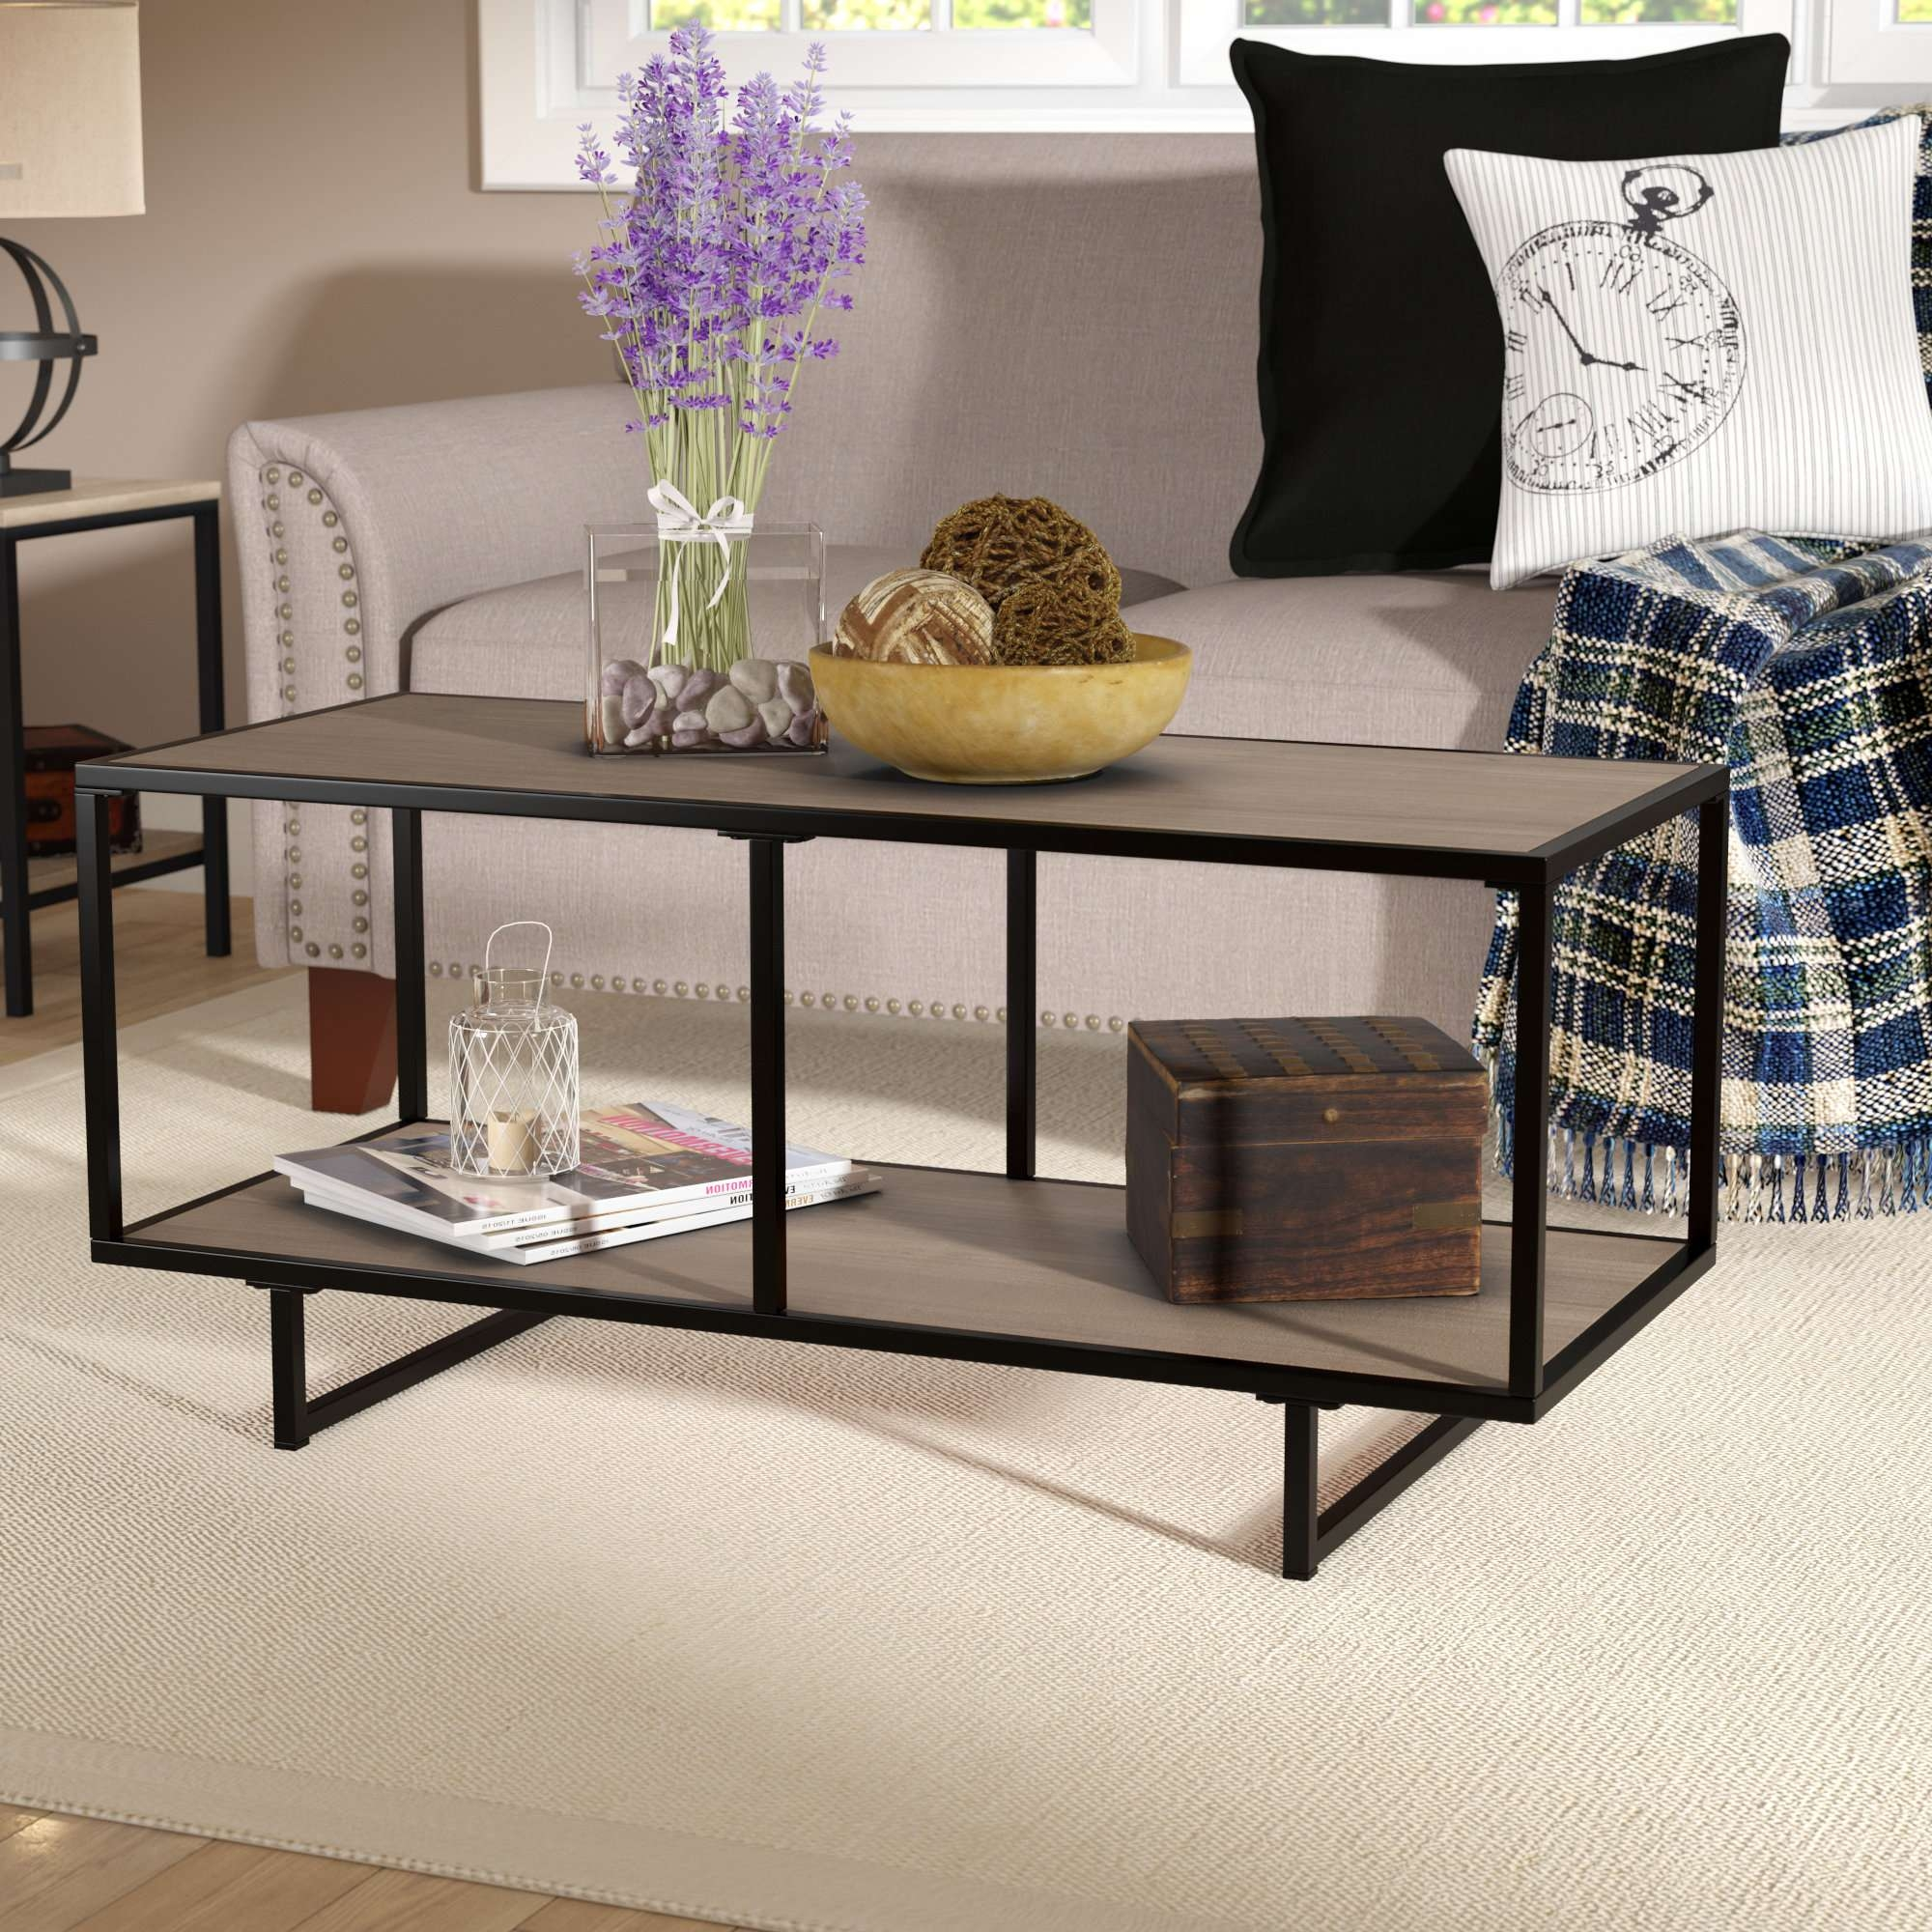 Trendy Coffee Tables With Shelves With Regard To Laurel Foundry Modern Farmhouse Zenaida Coffee Table & Reviews (View 18 of 20)